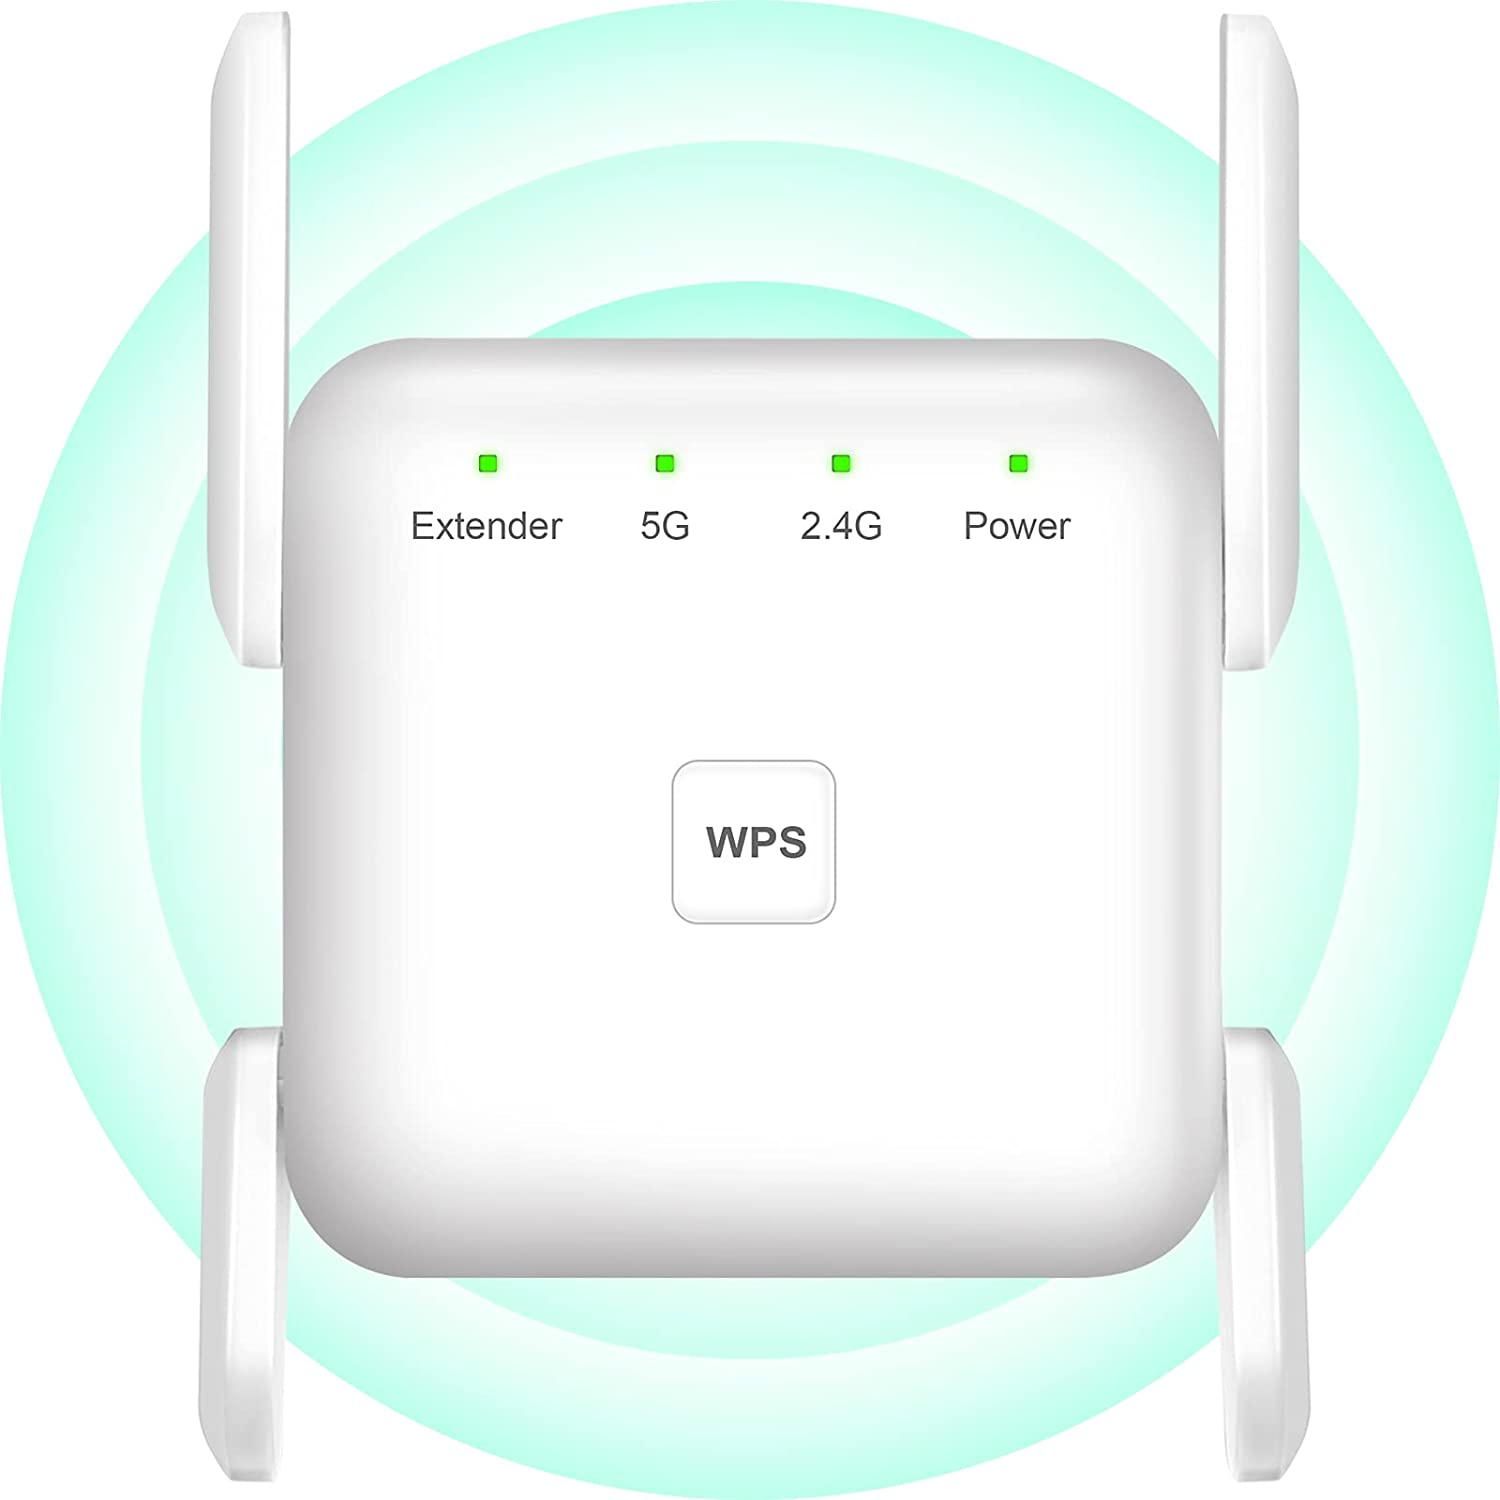 WiFi Extender, WiFi Booster -1200Mbps 2.4G & 5GHz WiFi Extenders Signal Booster for Home, WPS Setup WiFi Extender with Ethernet Port, 360° Full Coverage WiFi Signal Booster to Wireless Devices (White)